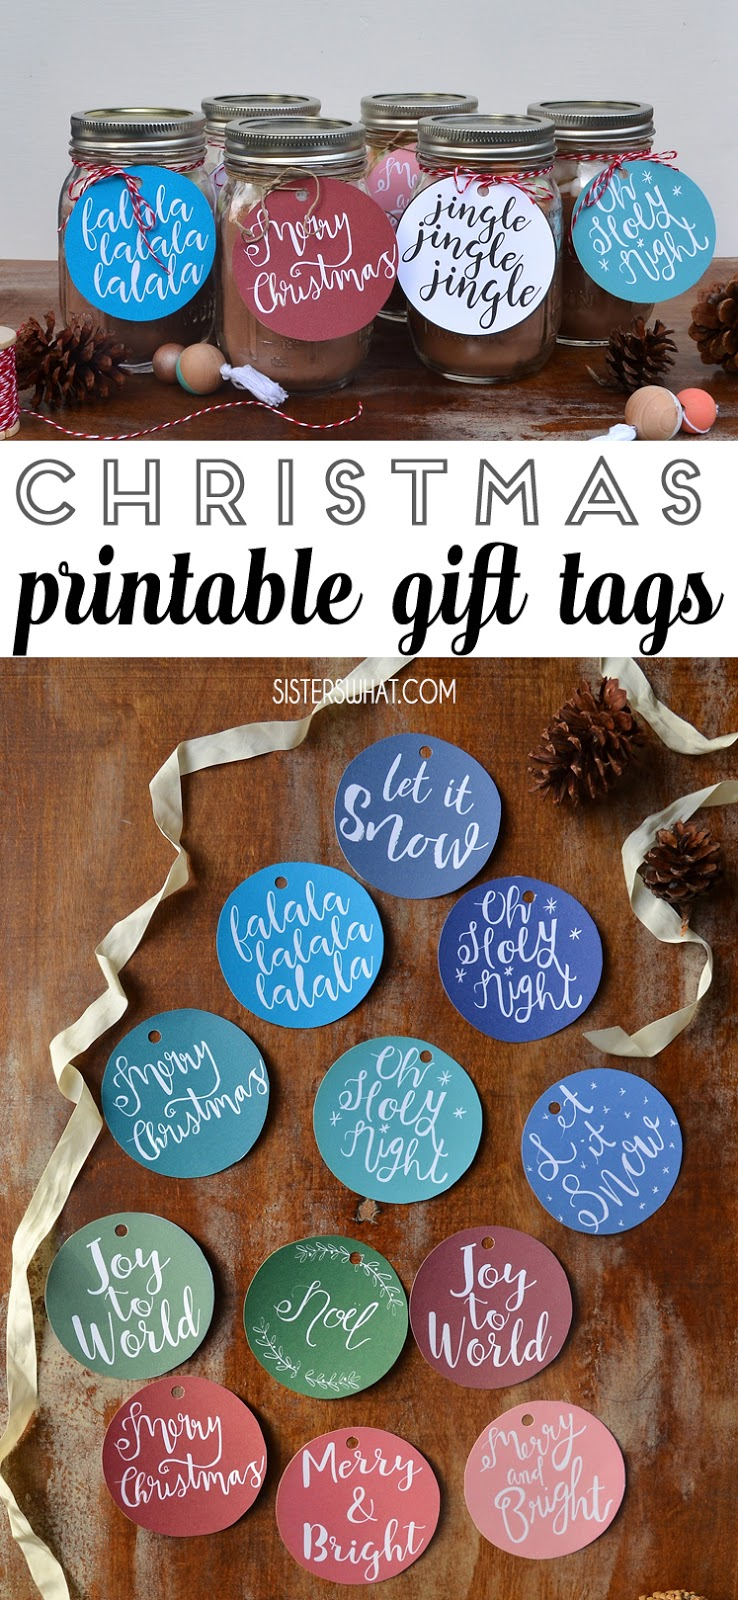 Christmas printable gift tags hot chocolate gift